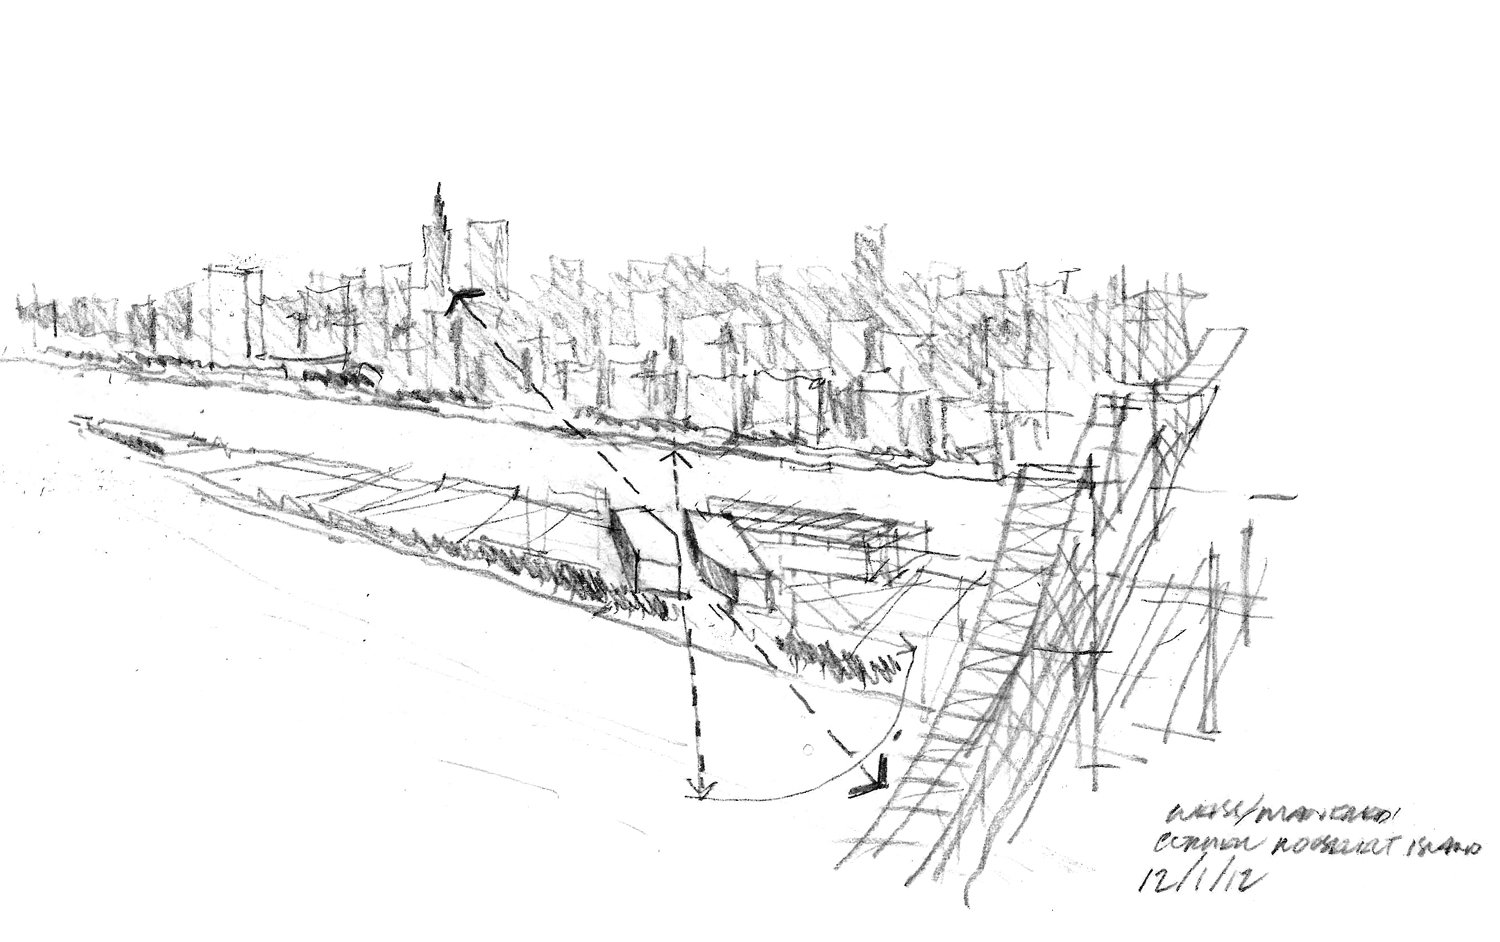 RIVER-TO-RIVER VIEWS CONCEPT SKETCH WEISS/MANFREDI}